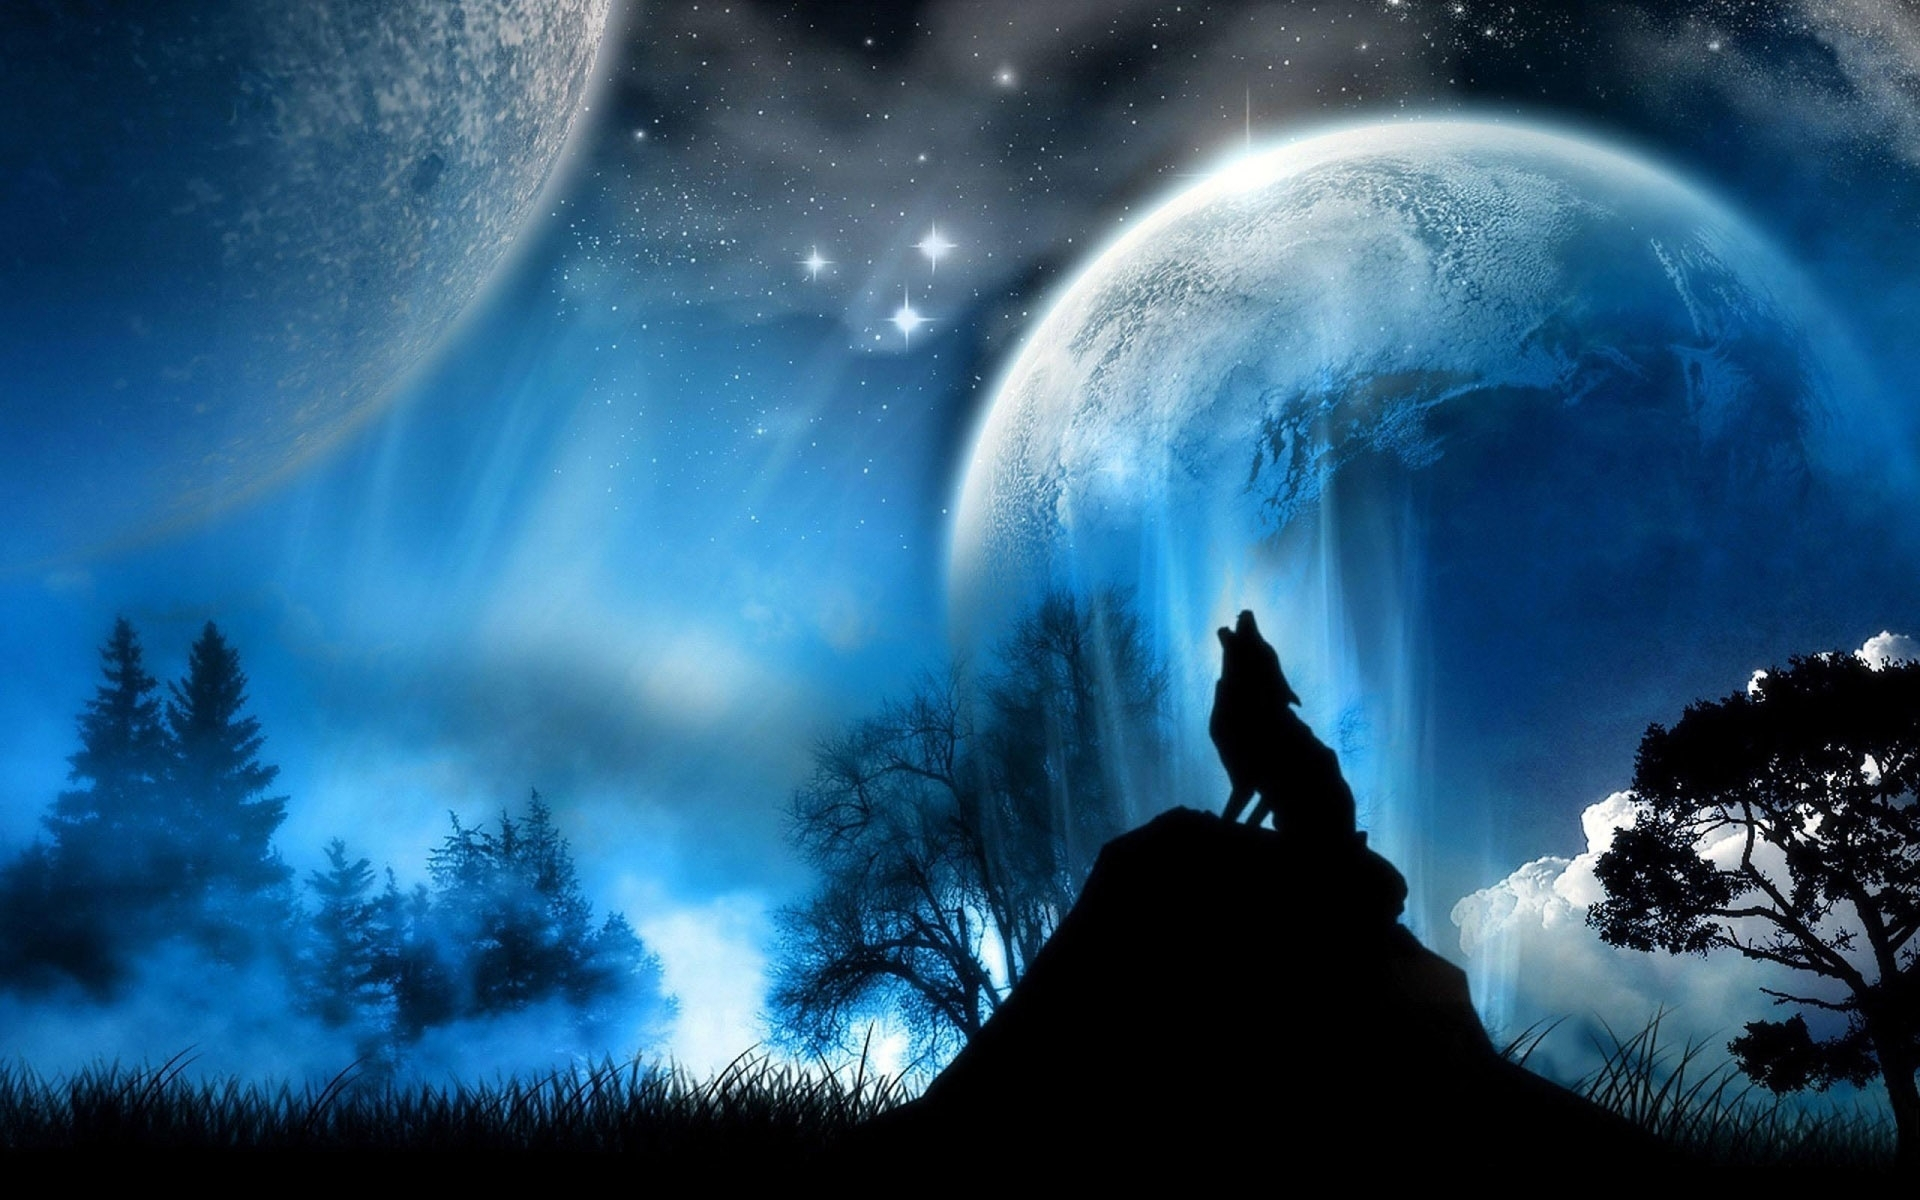 wolf and moon wallpaper - hd wallpapers